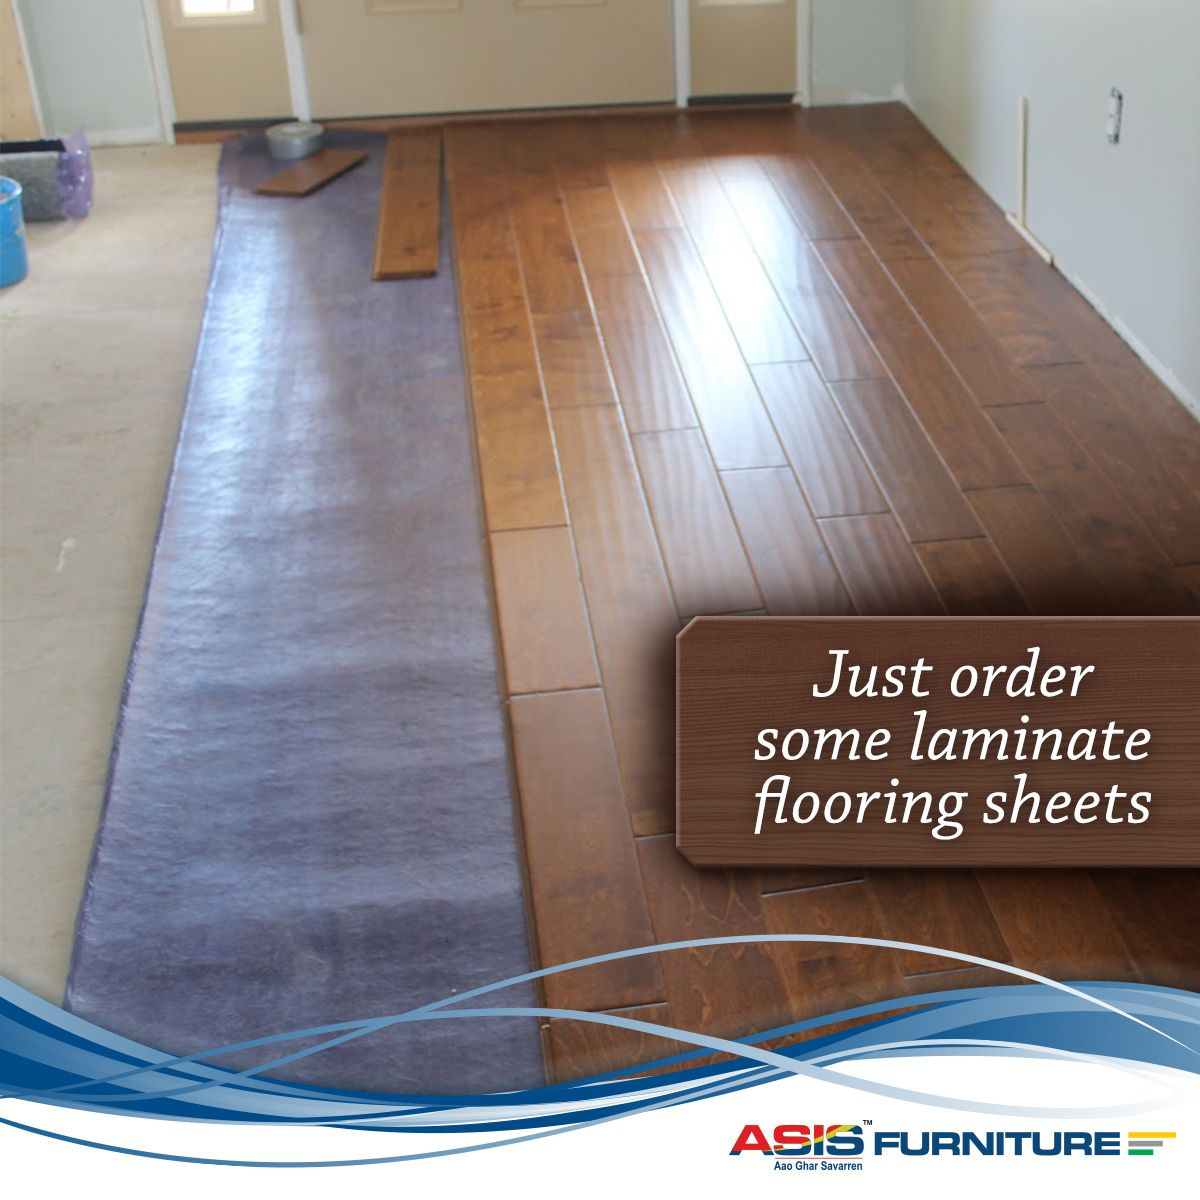 Glue Less Laminate Floating Floors That Can Be Installed By Homeowners Themselves As They Are Easier